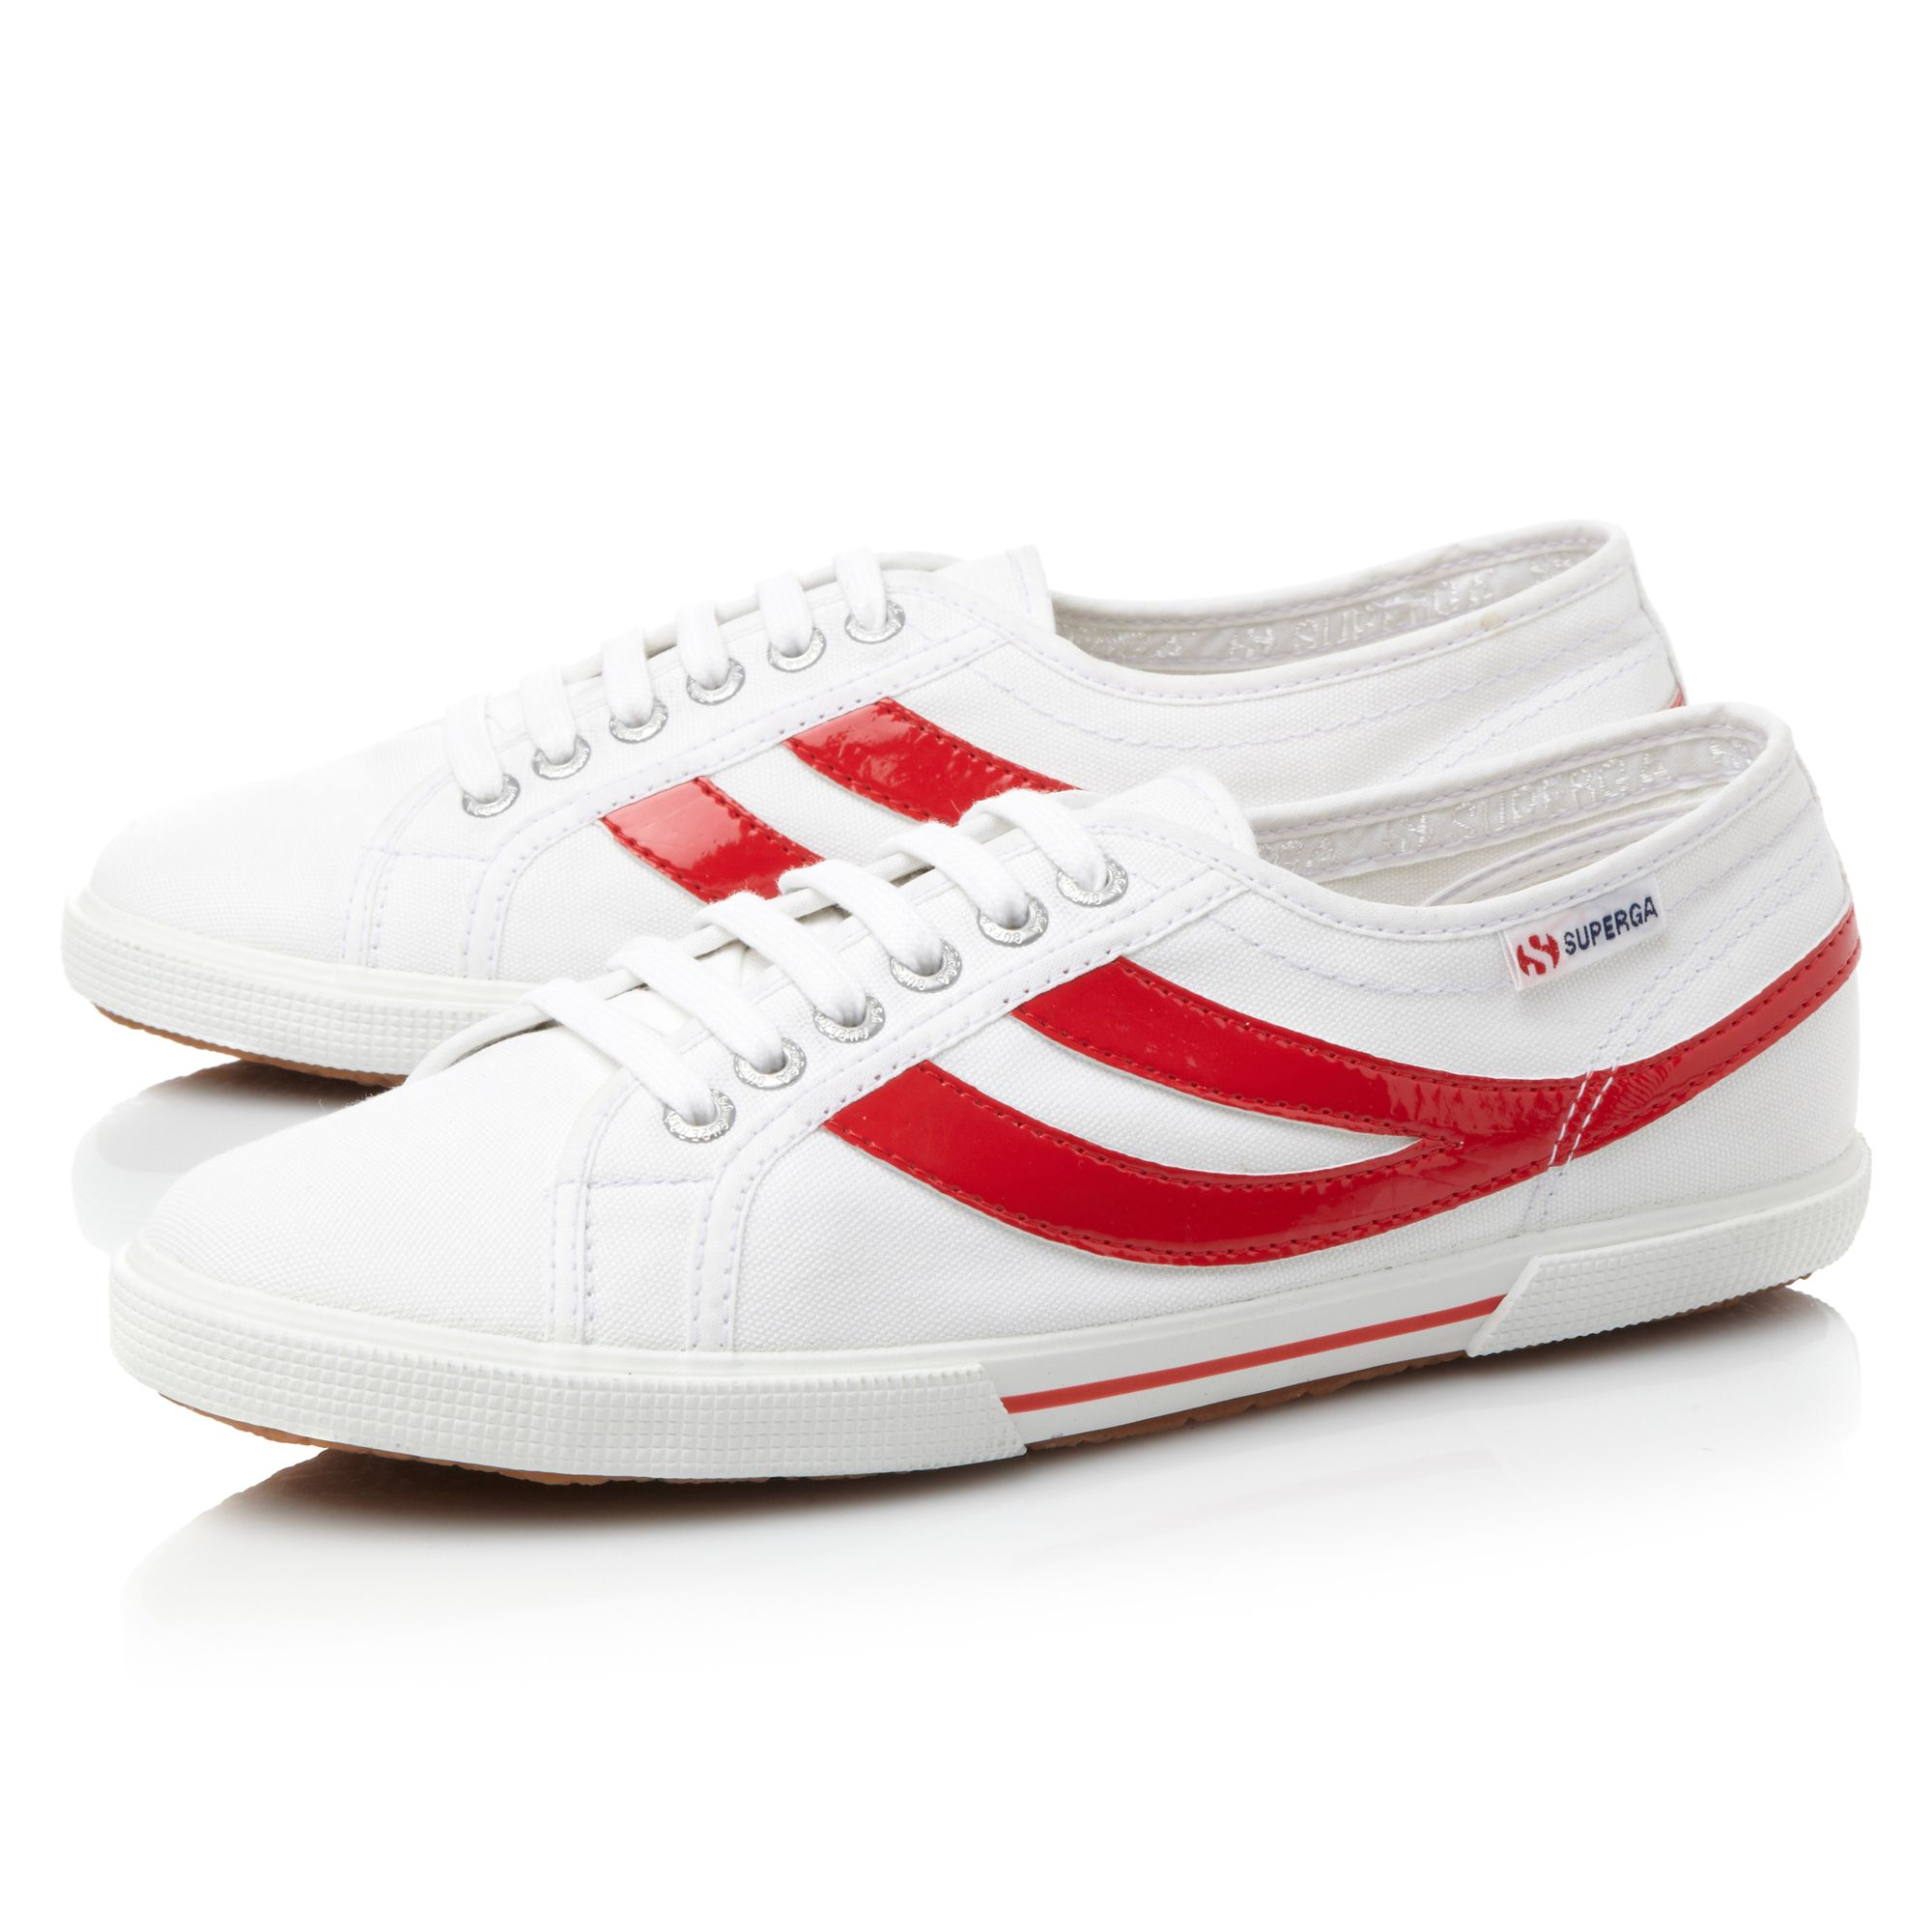 2951 retro runner plimsoll